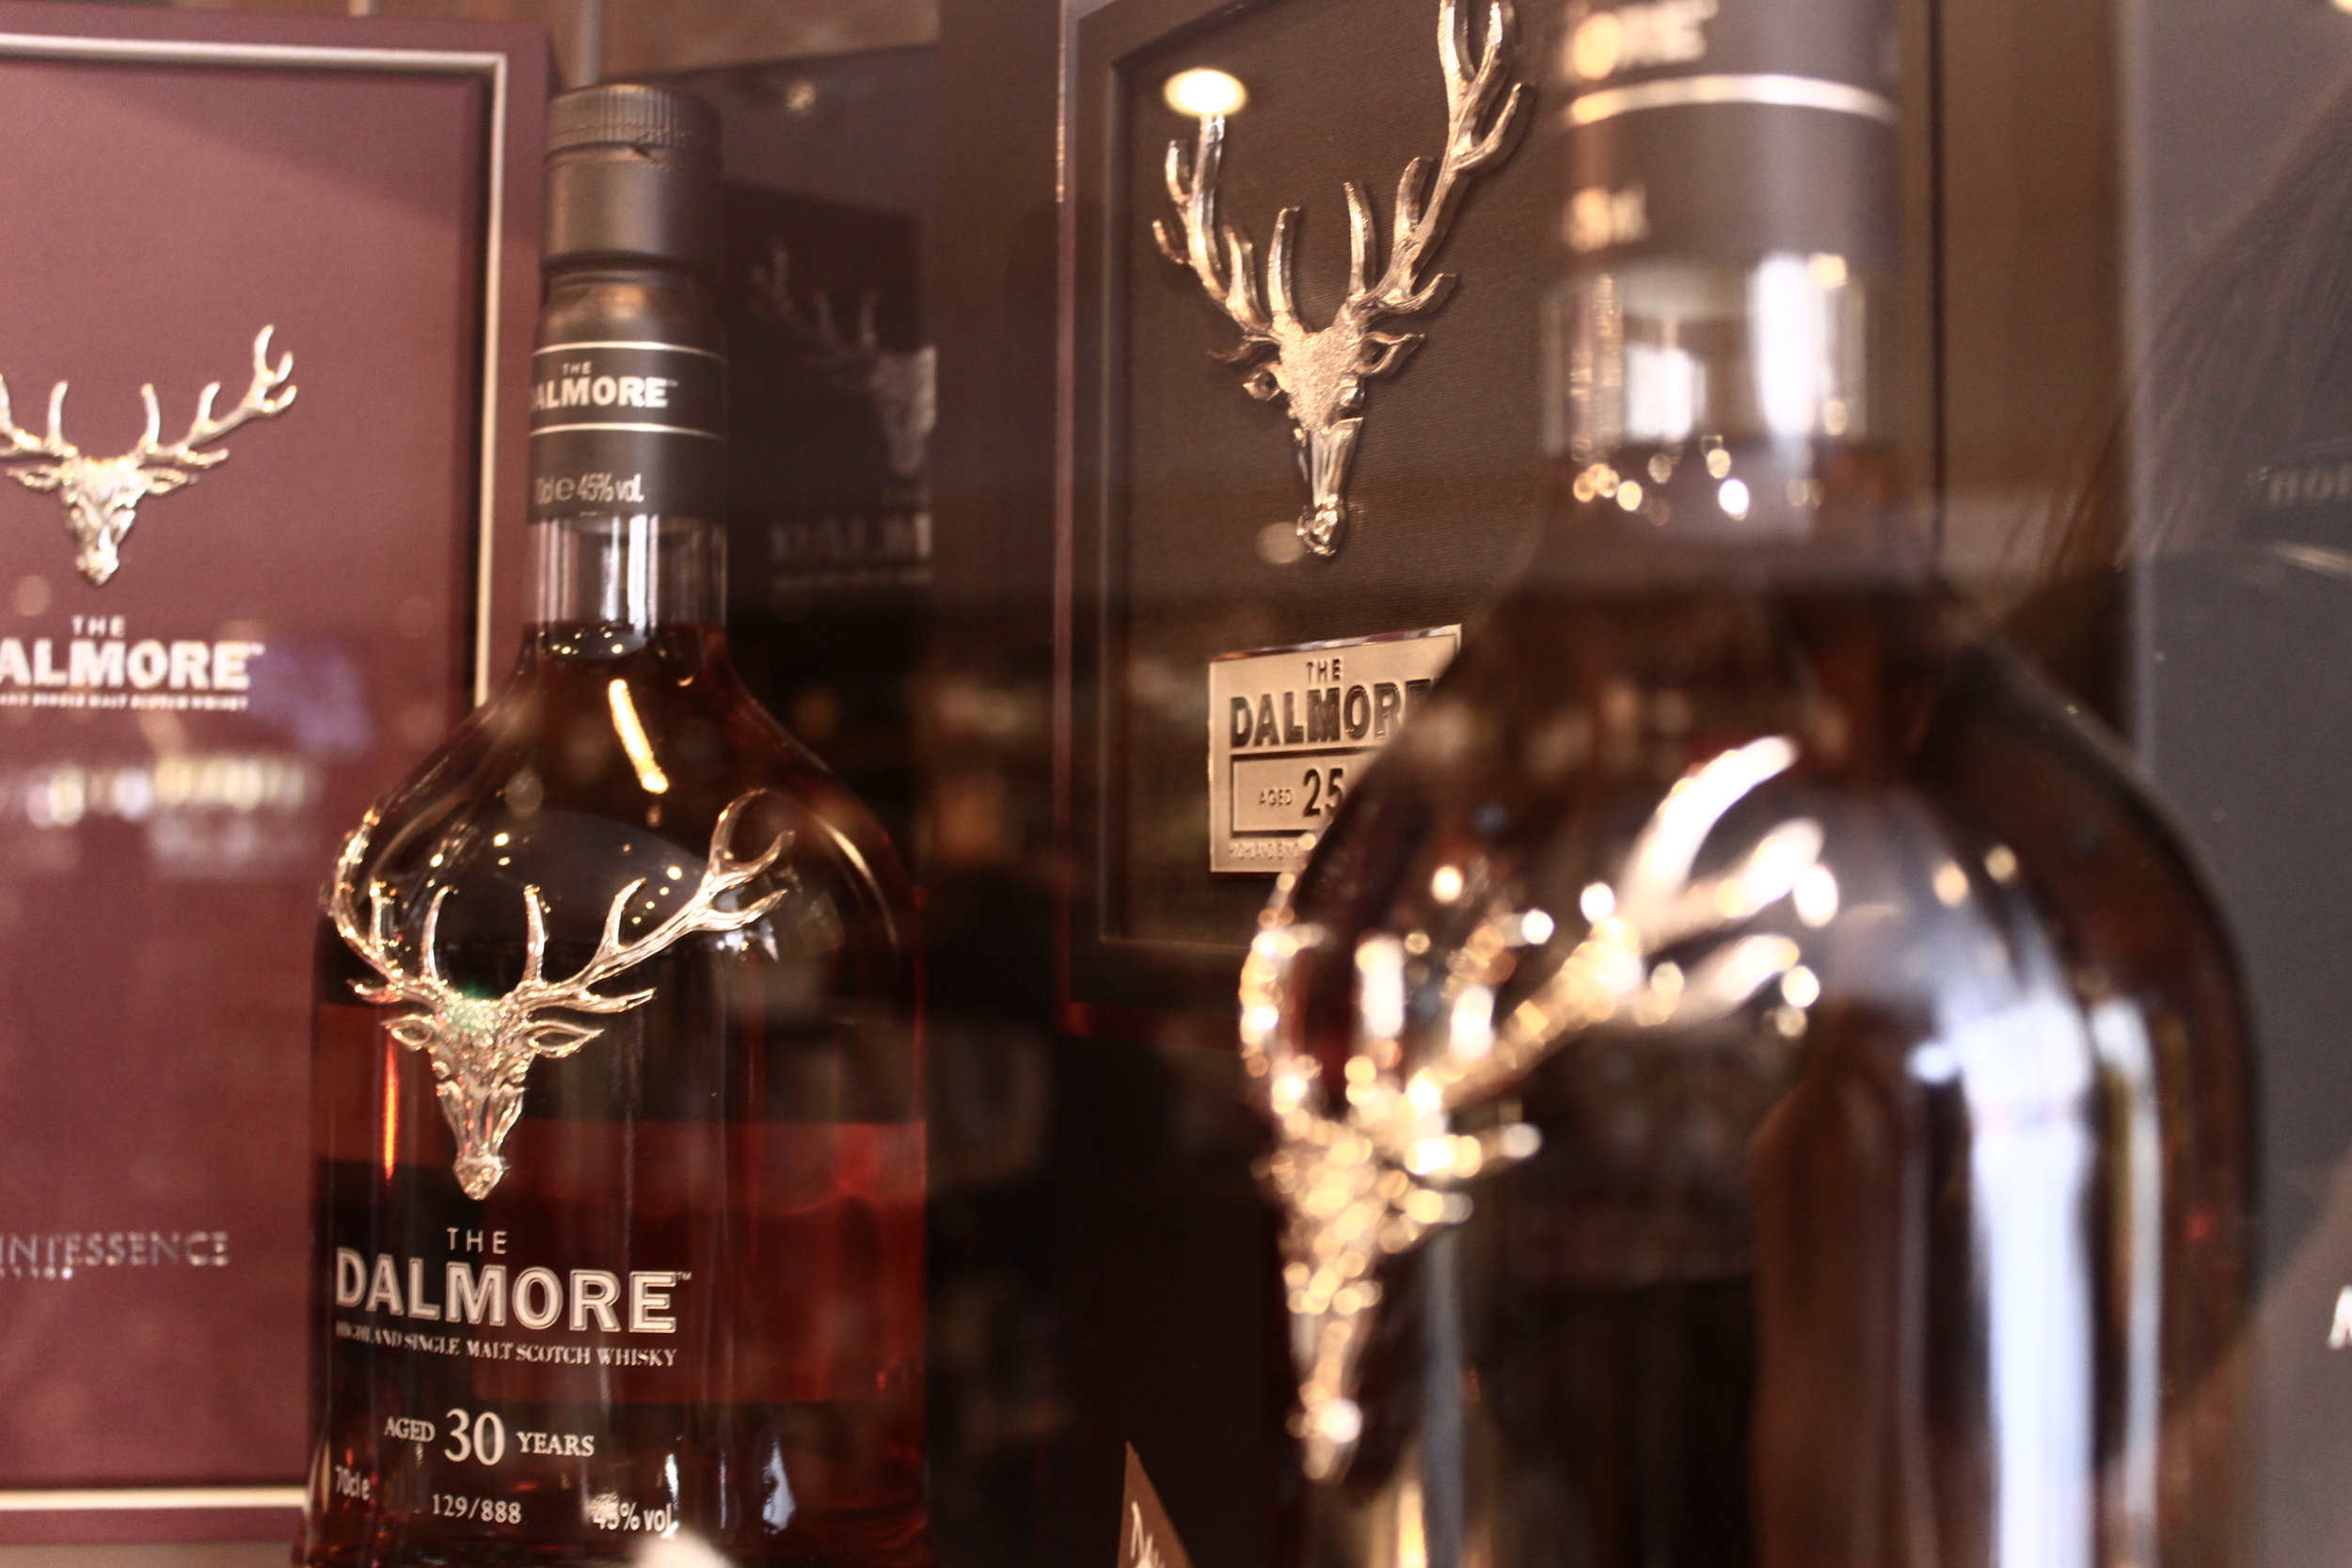 Dalmore's stag bottles; an authentic Scottish image or just canny branding?